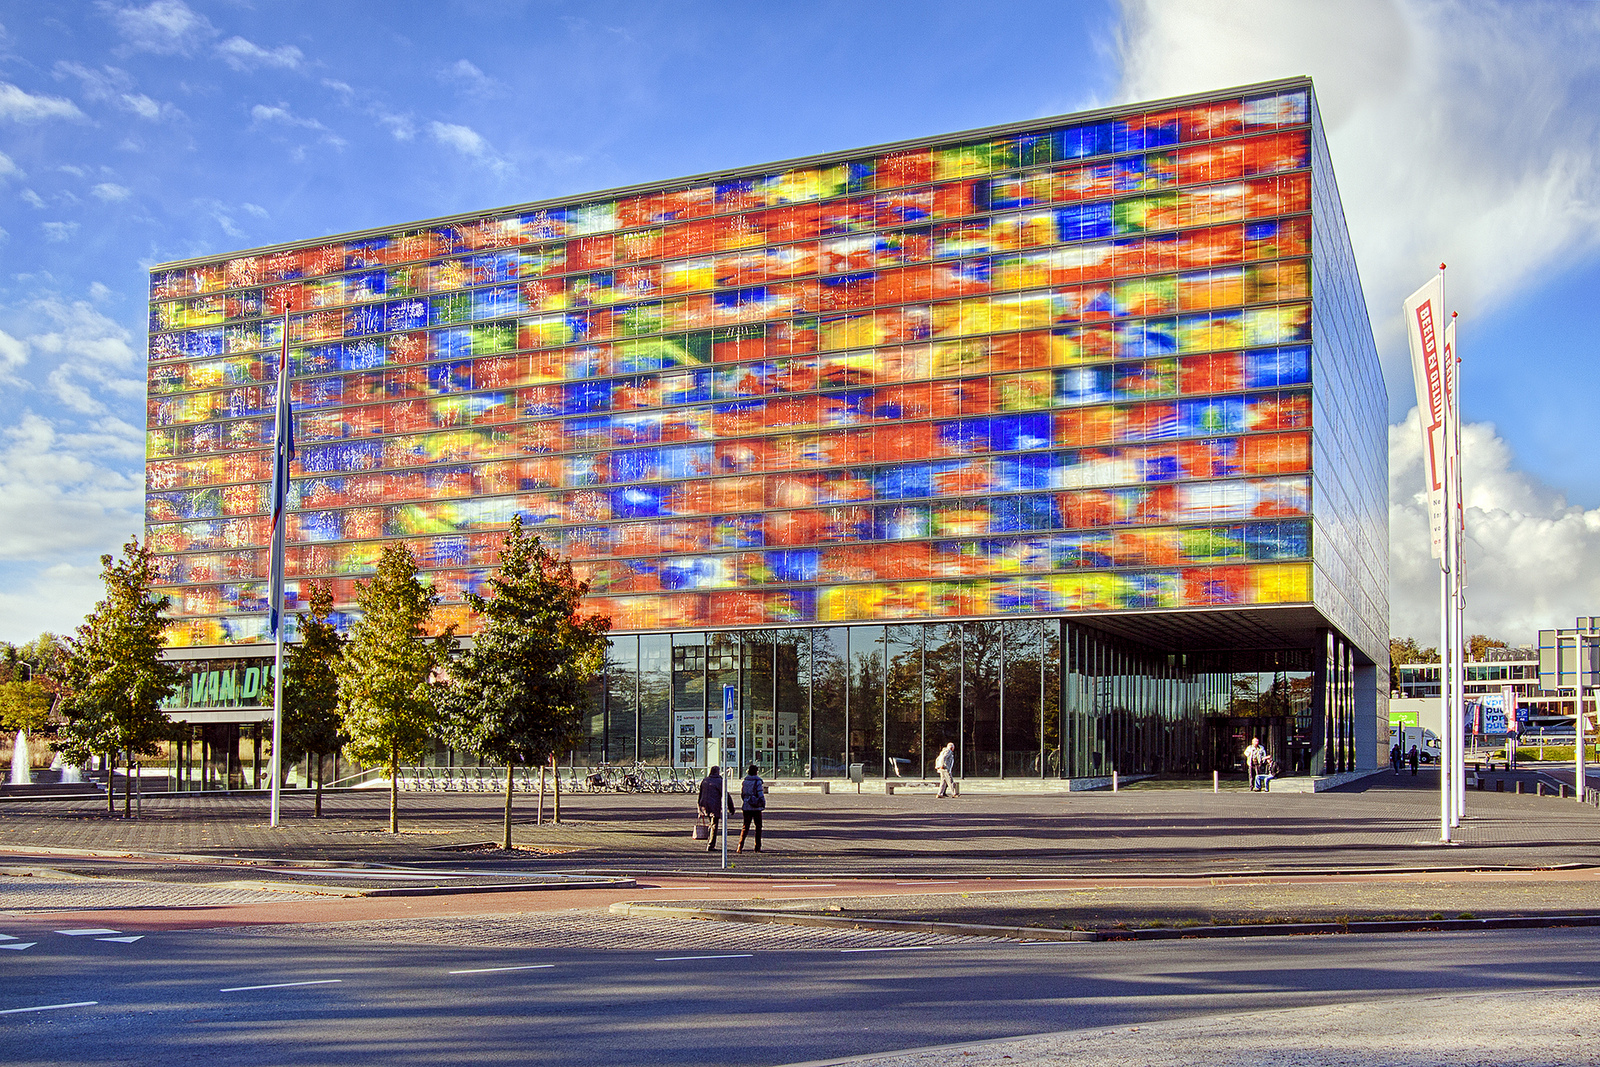 1000+ images about Colorful Buildings on Pinterest.